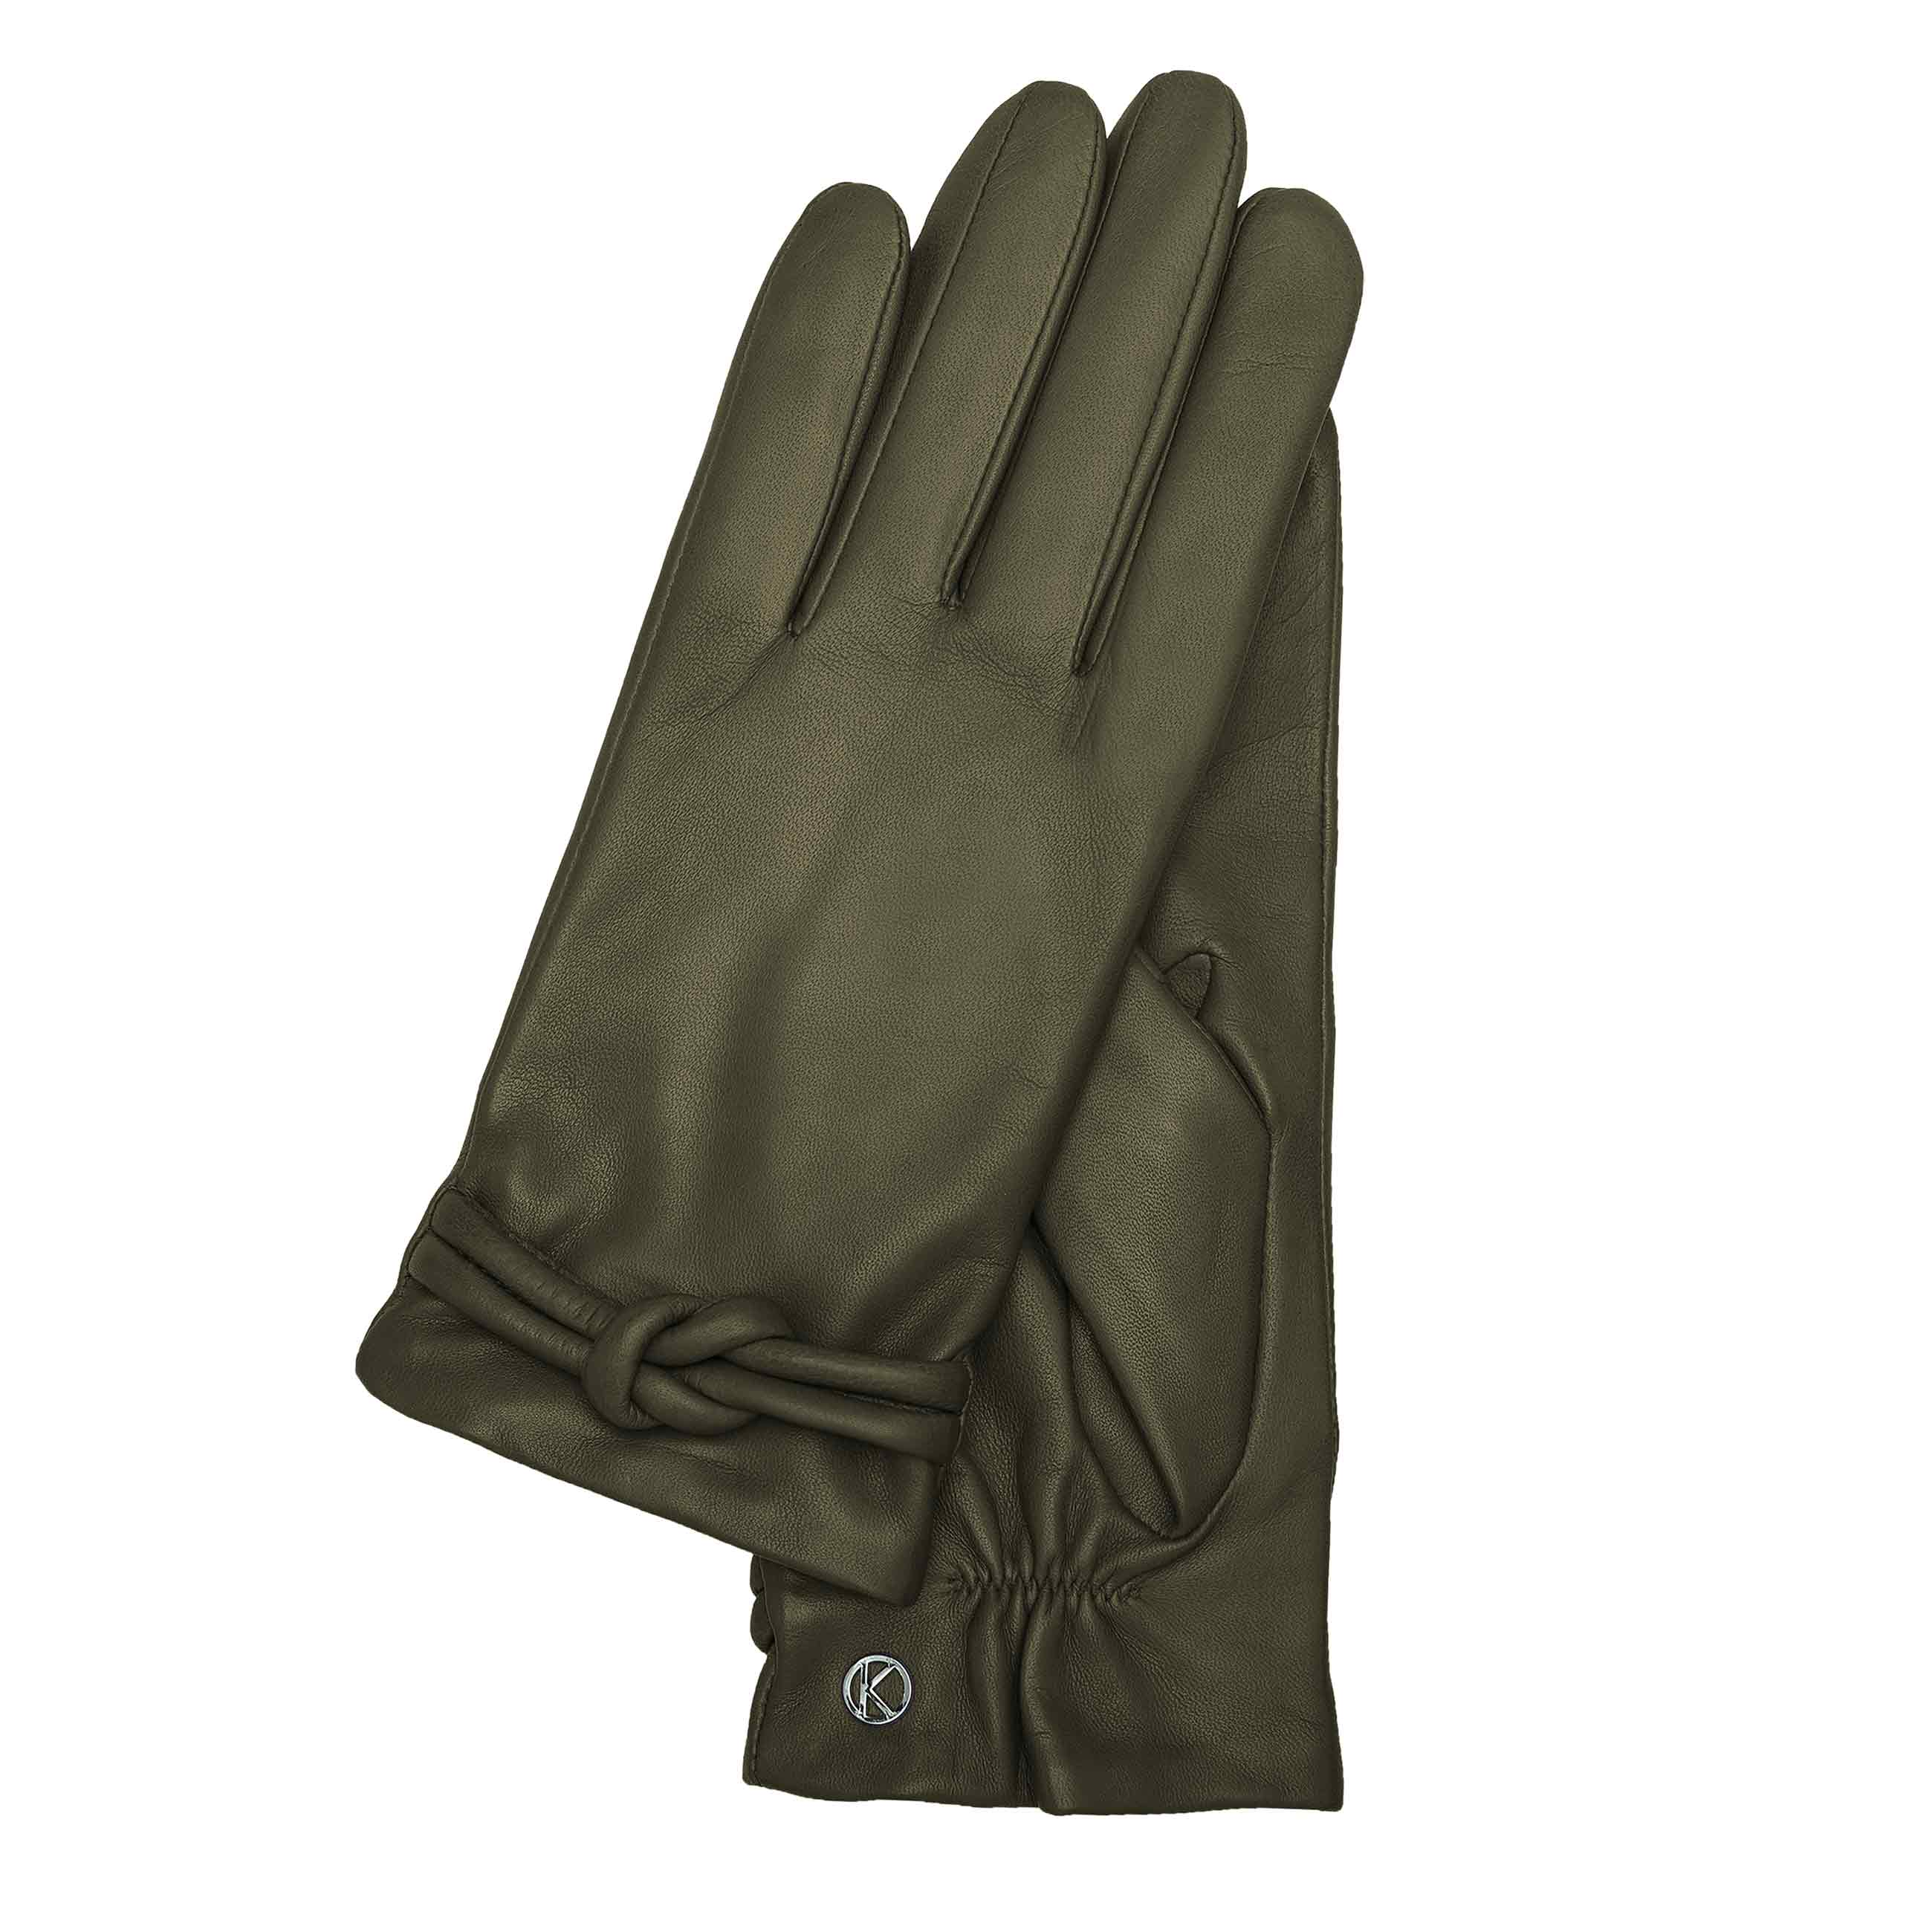 Olivia Touch545 olive